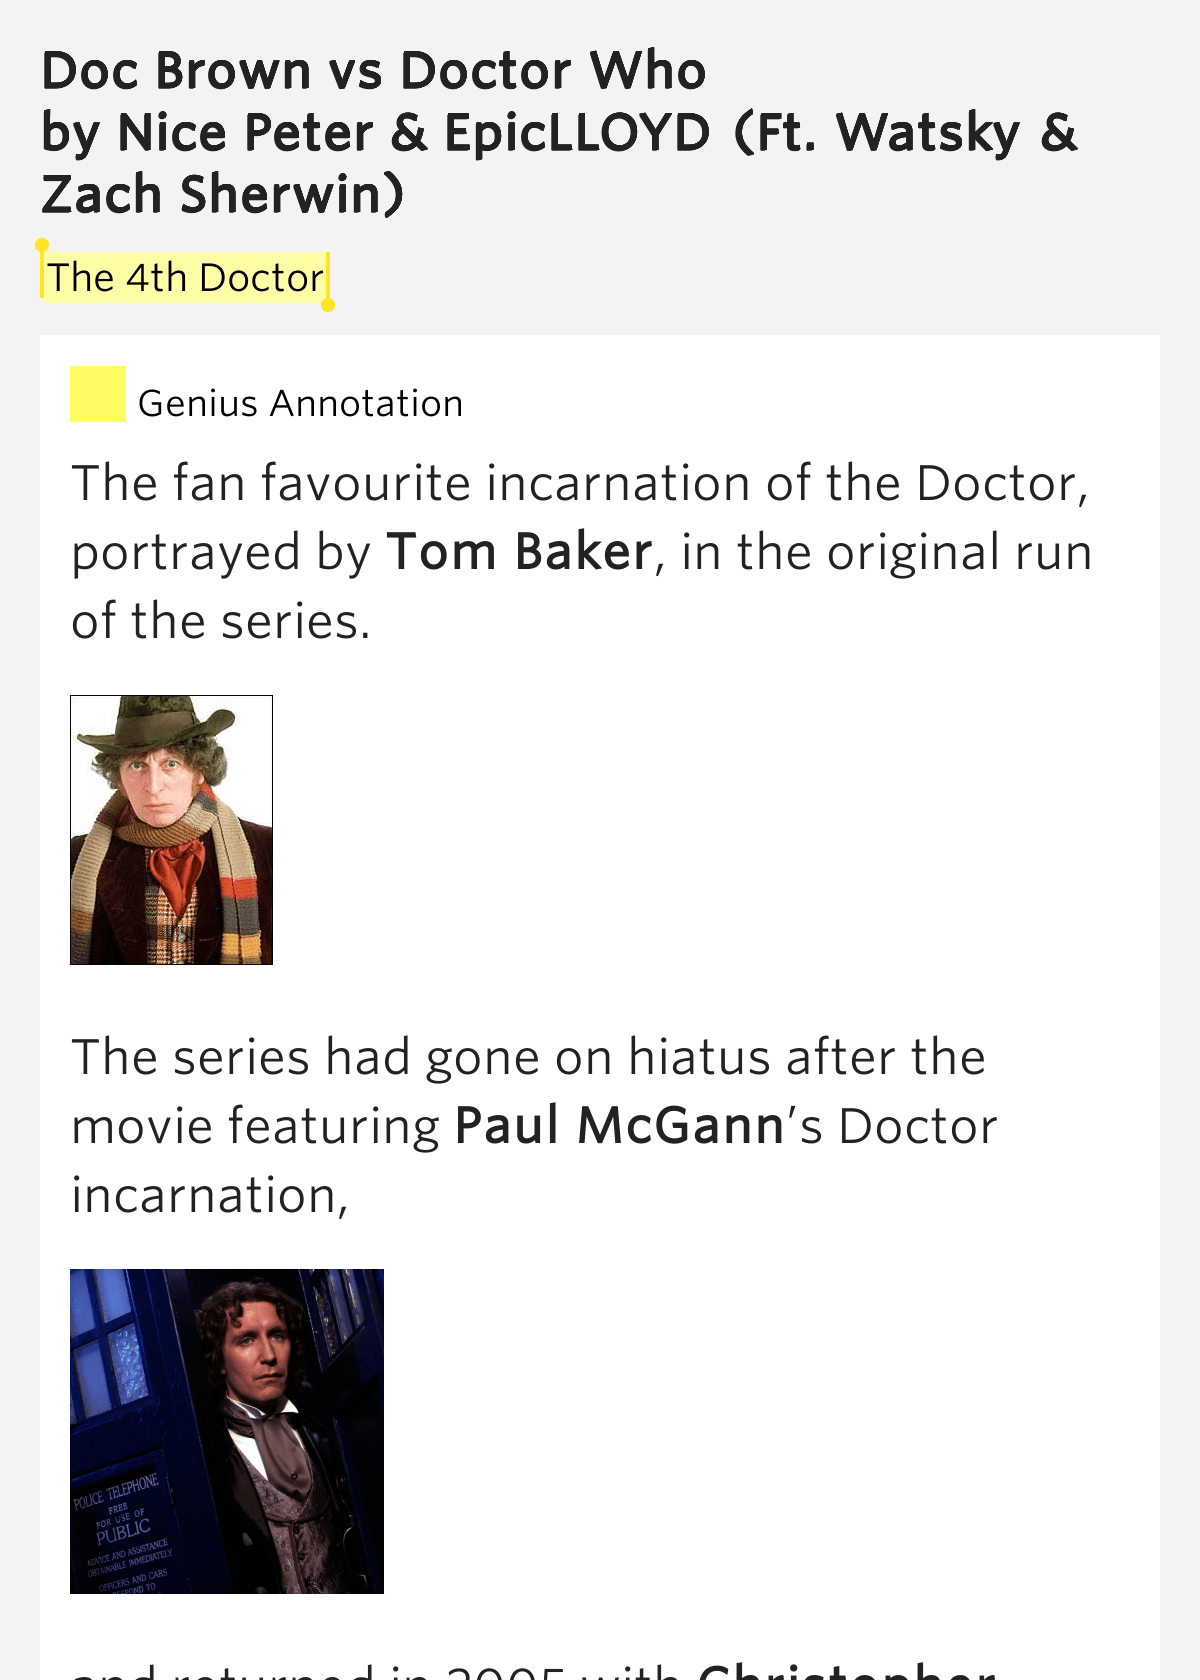 The 4th Doctor Doc Brown Vs Doctor Who Lyrics Meaning